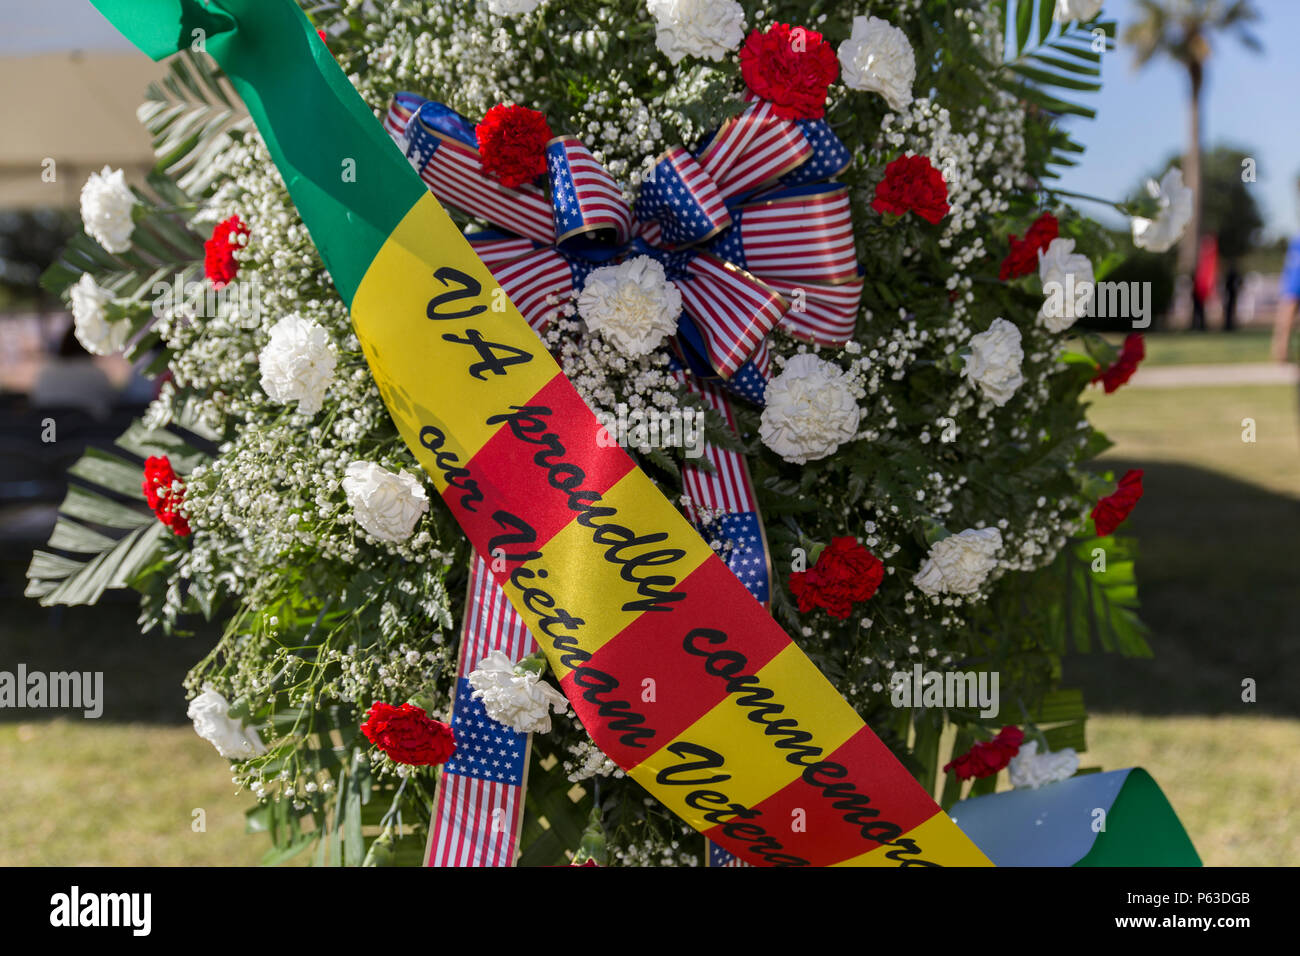 A wreath, commemorating the 50th anniversary of the Vietnam War, is